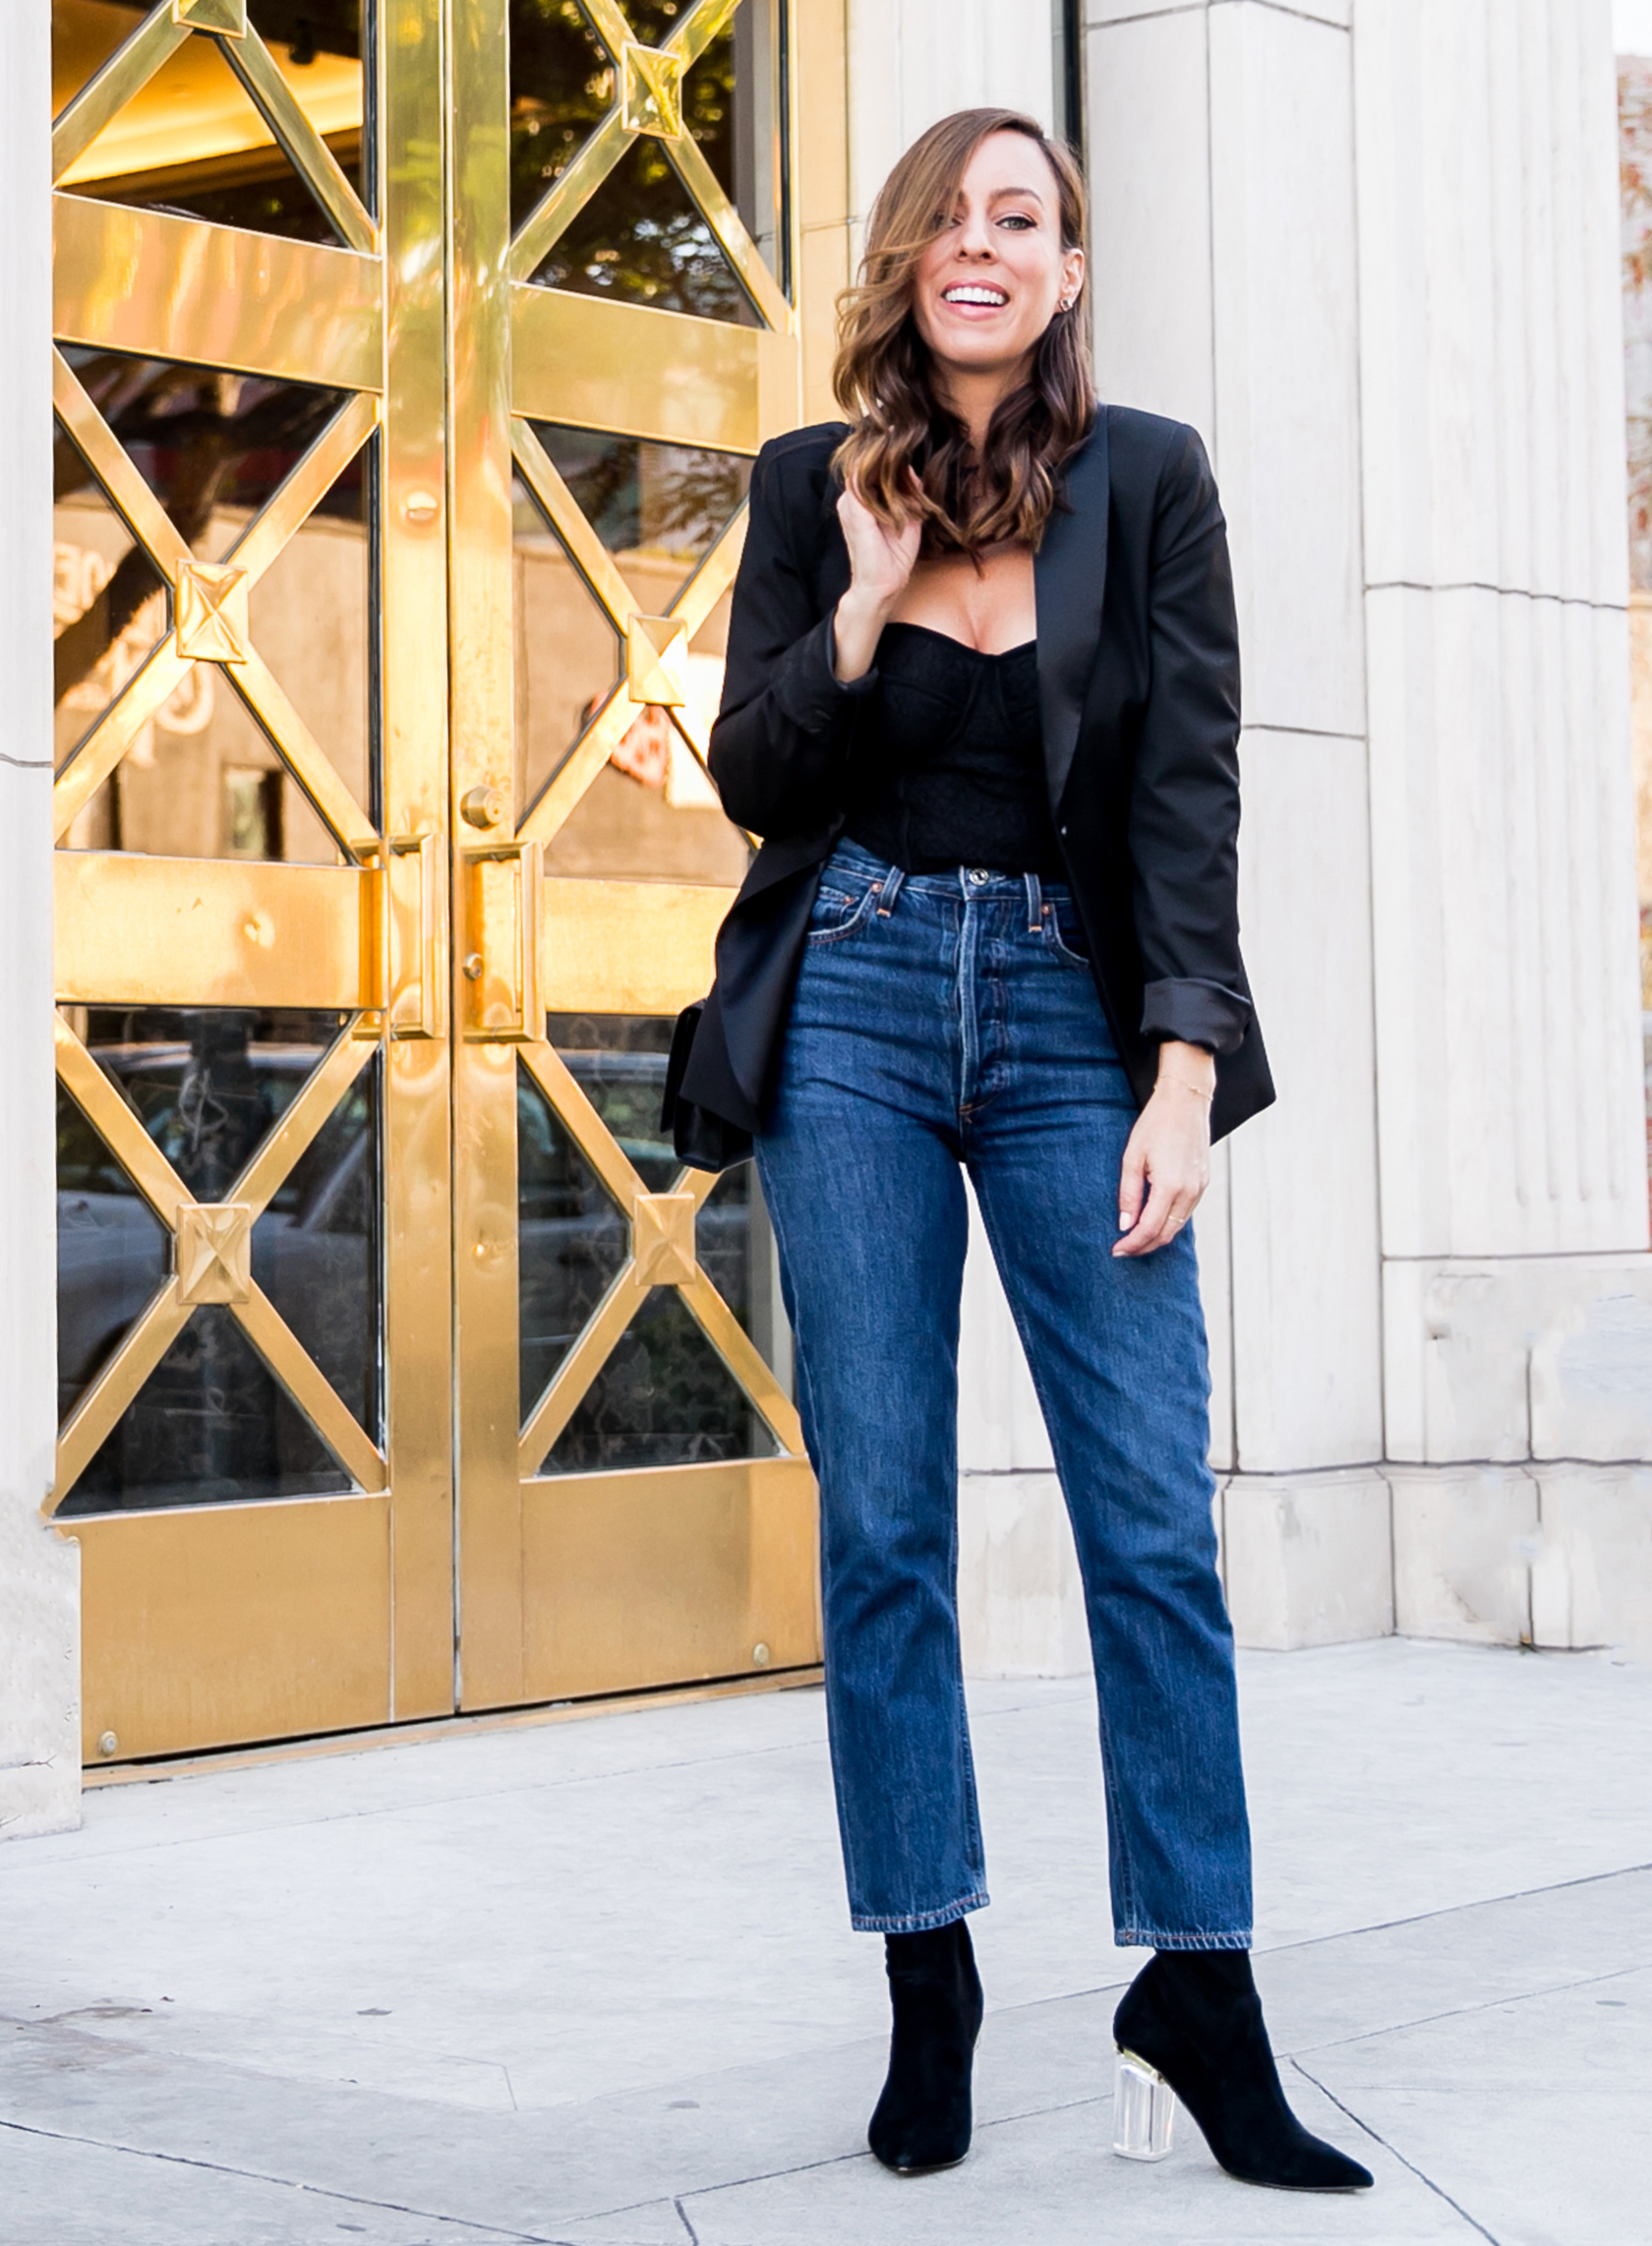 Sydne Style shows how to wear a tuxedo blazer with corset and jeans